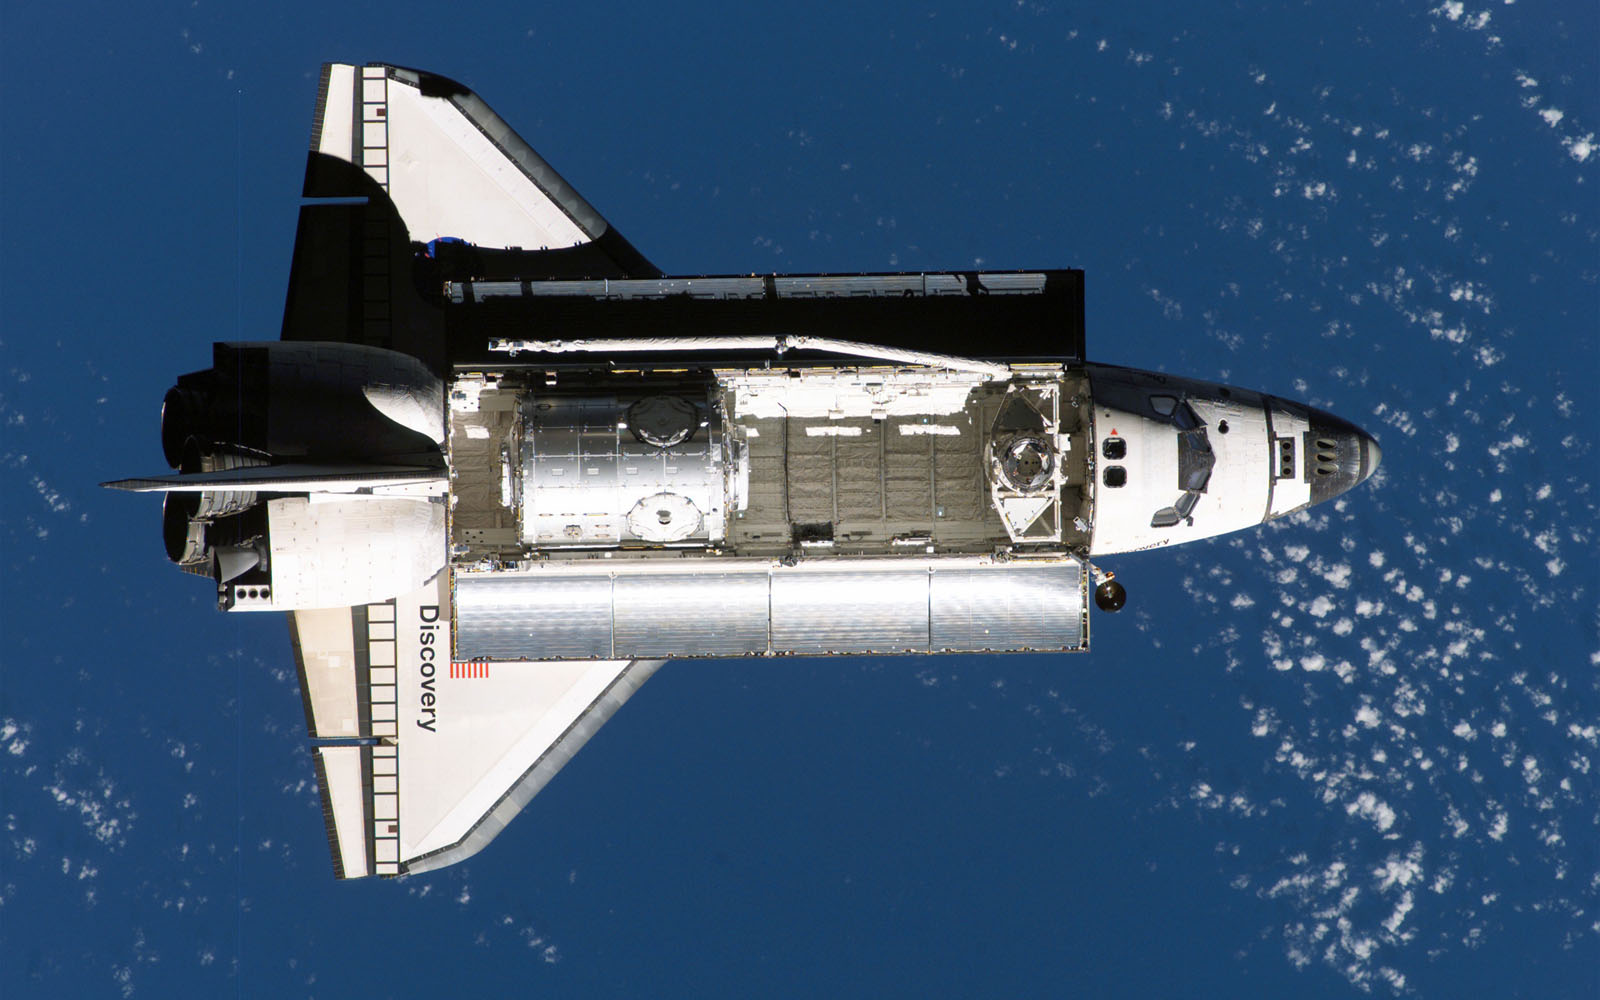 Tag Discovery Space Shuttle Photos Images Wallpapers and Pictures 1600x1000